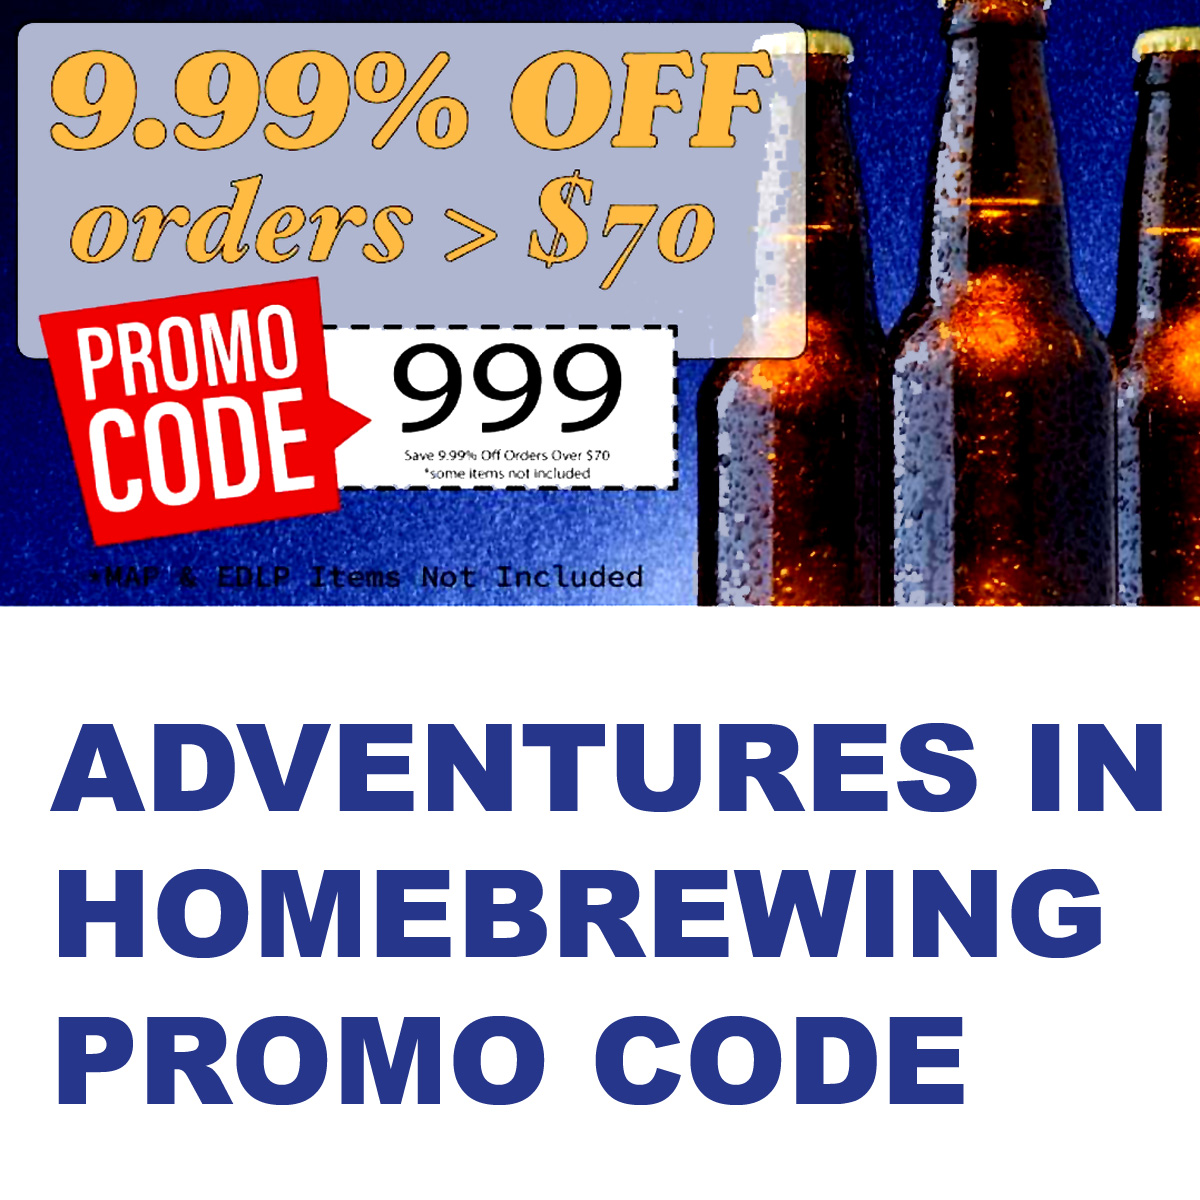 Adventures In Homebrewing Save 10% On Orders Over $70 at Adventures in Homebrewing Coupon Code